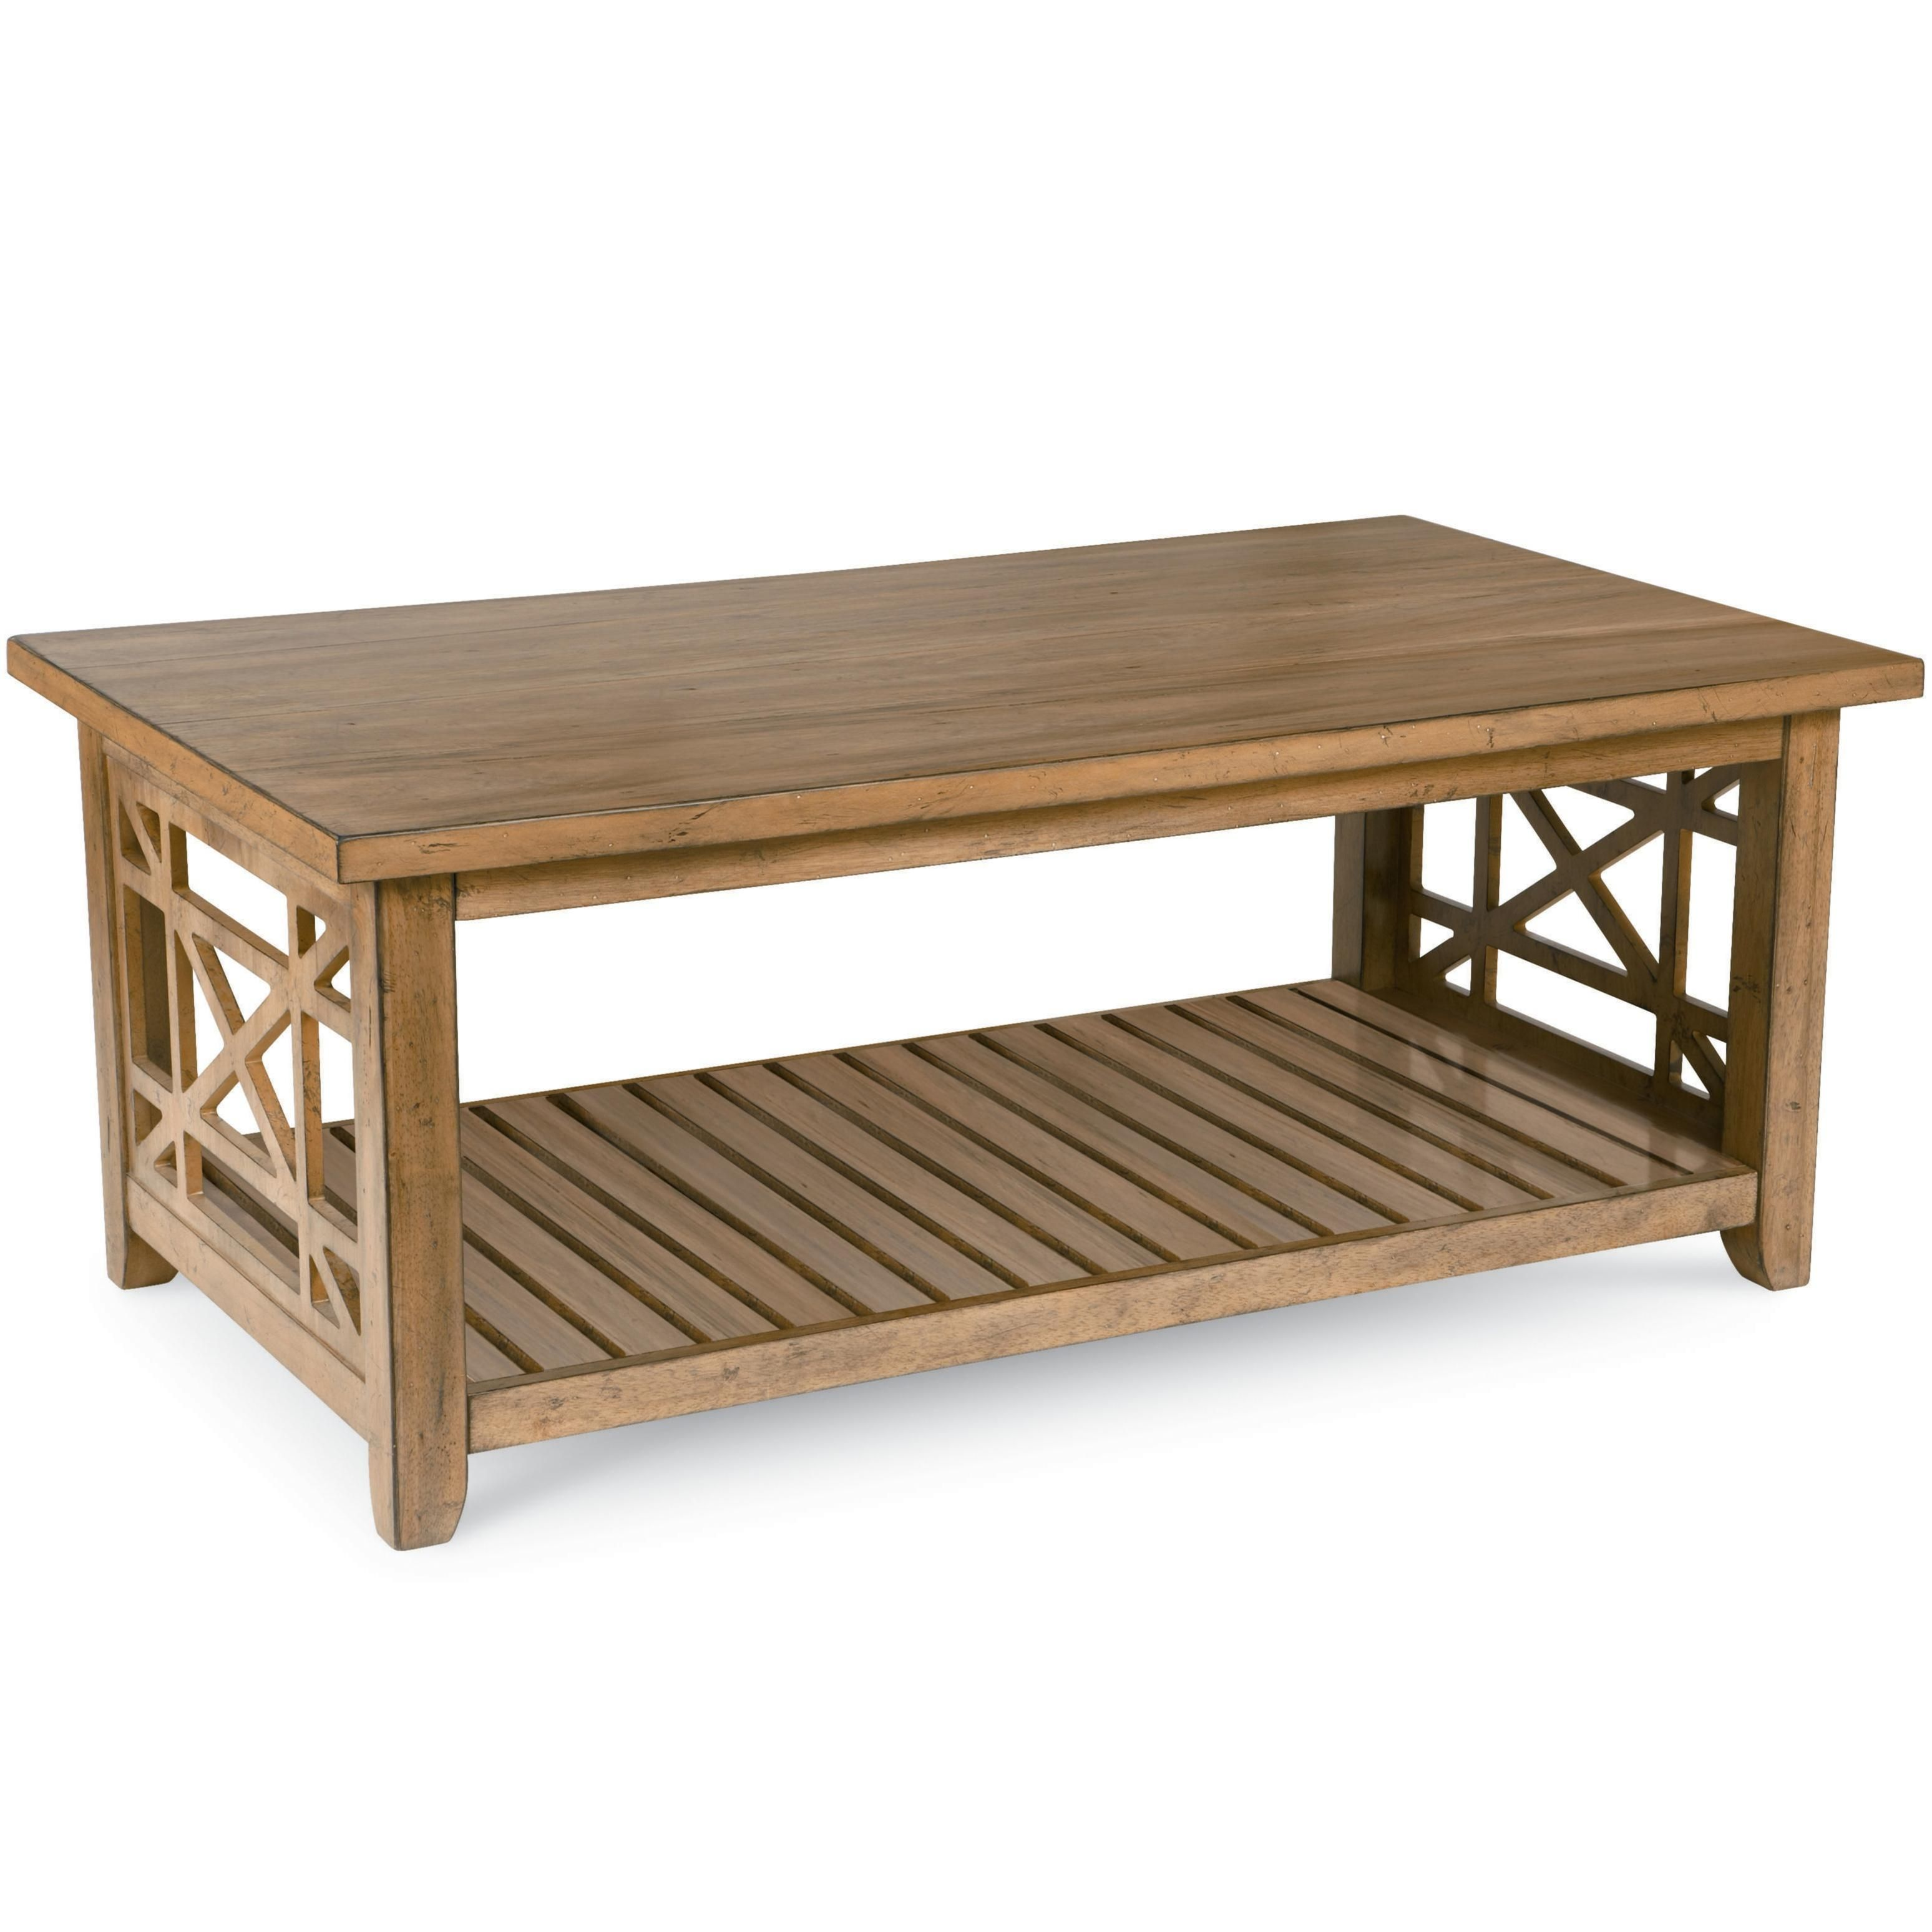 Frasier Rectangular Cocktail Table With Casters And Shelf By Broyhill Furniture At Hudson S Furniture Coffee Table Coffee Table Wayfair Broyhill Furniture [ 3096 x 3096 Pixel ]